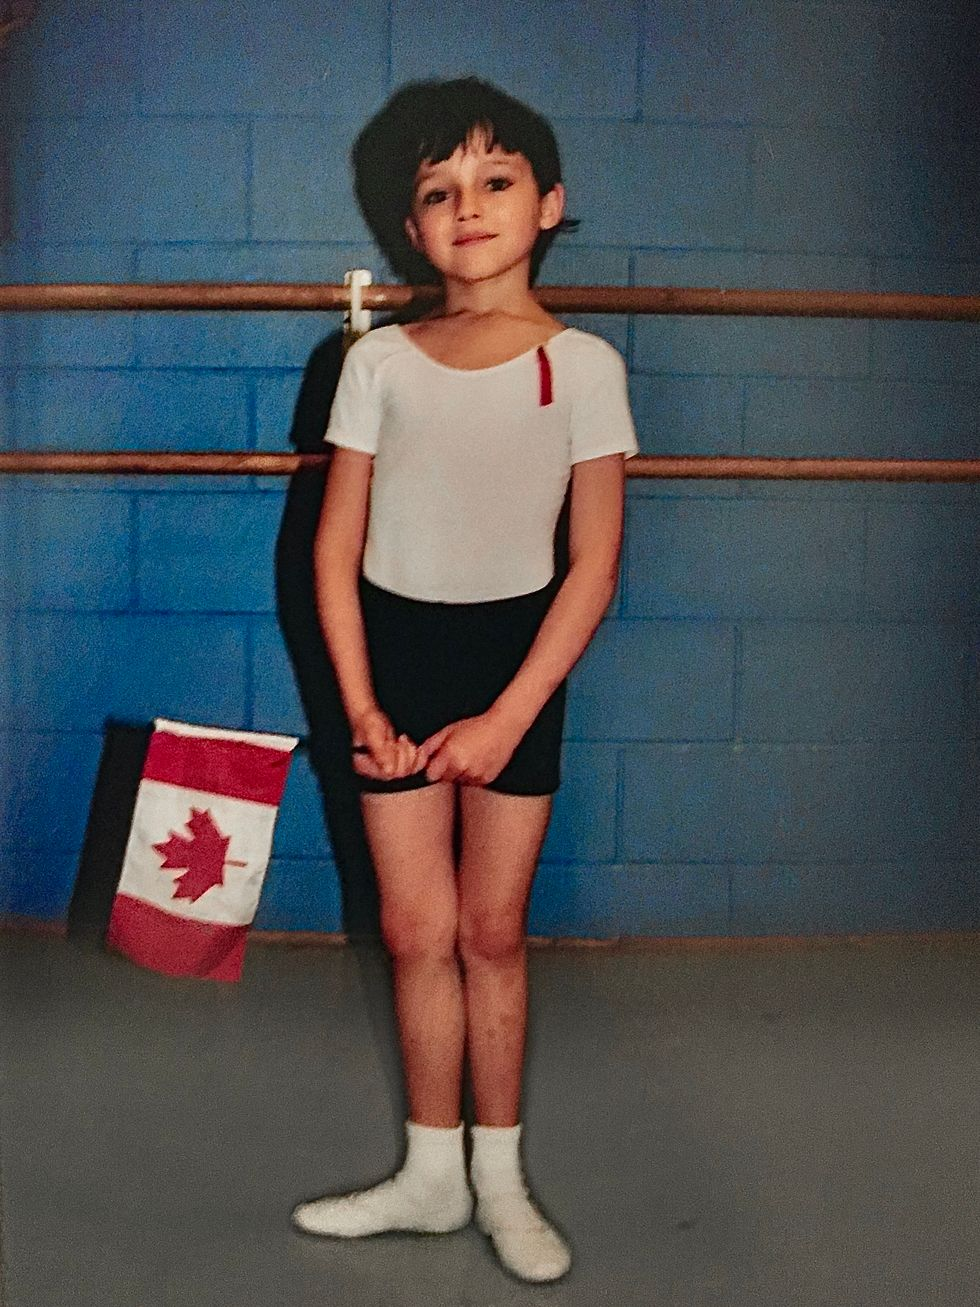 A very young Frenette stands in first position in front of a barre in black shorts, white tee and white shoes with socks. He looks serene and holds a small Canadian flag in his hands.